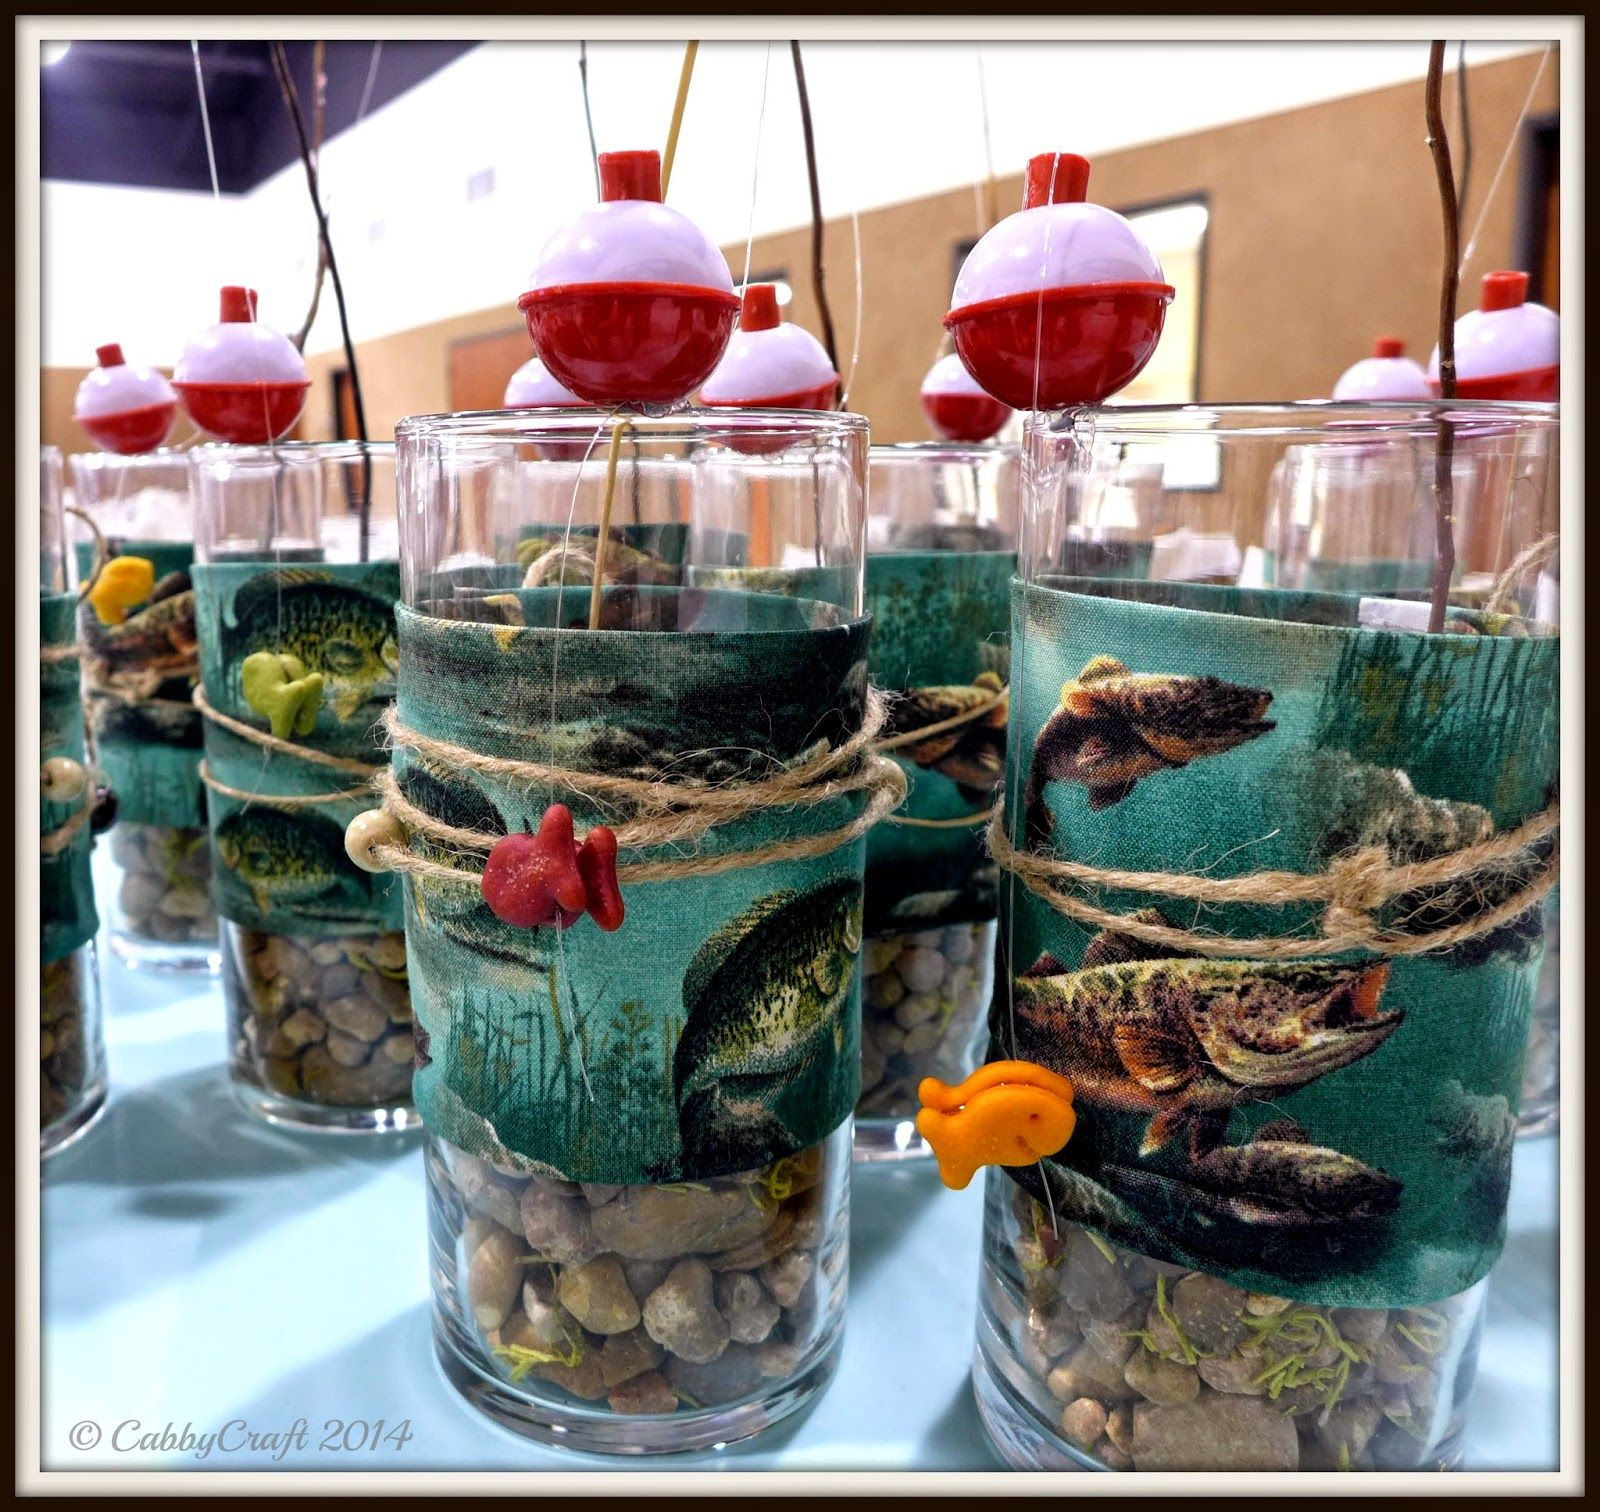 The cabby crafter events gone fishing party theme for Fishing themed birthday